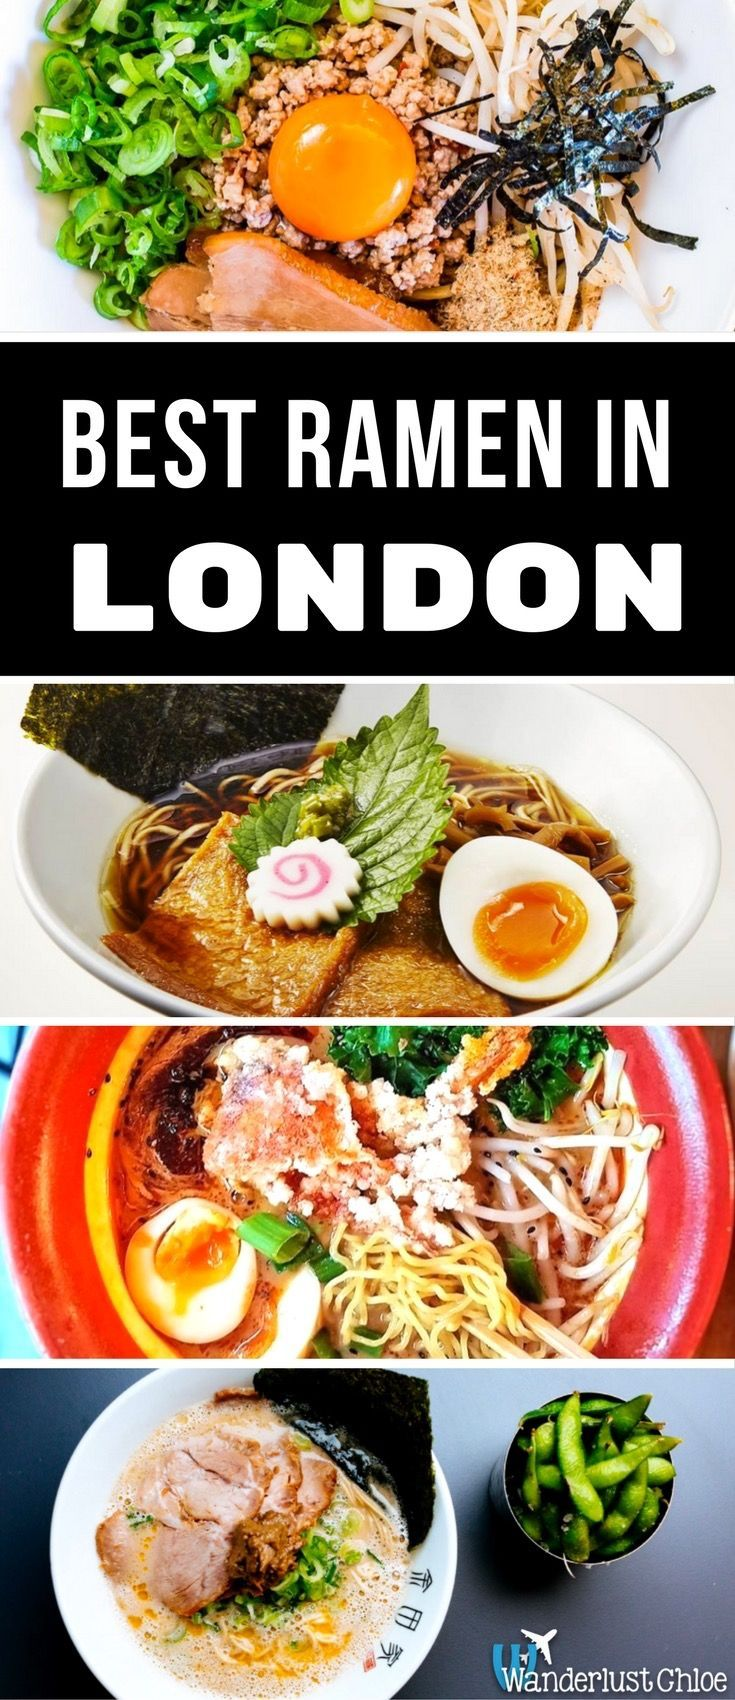 Best Ramen In London. From delicious broths at Tonkotsu to truffle ramen at Kanada-Ya and the spiciest of noodle soups at Sasuke, here are the top restaurants in London for a great Japanese ramen. https://www.wanderlustchloe.com/best-ramen-in-london/